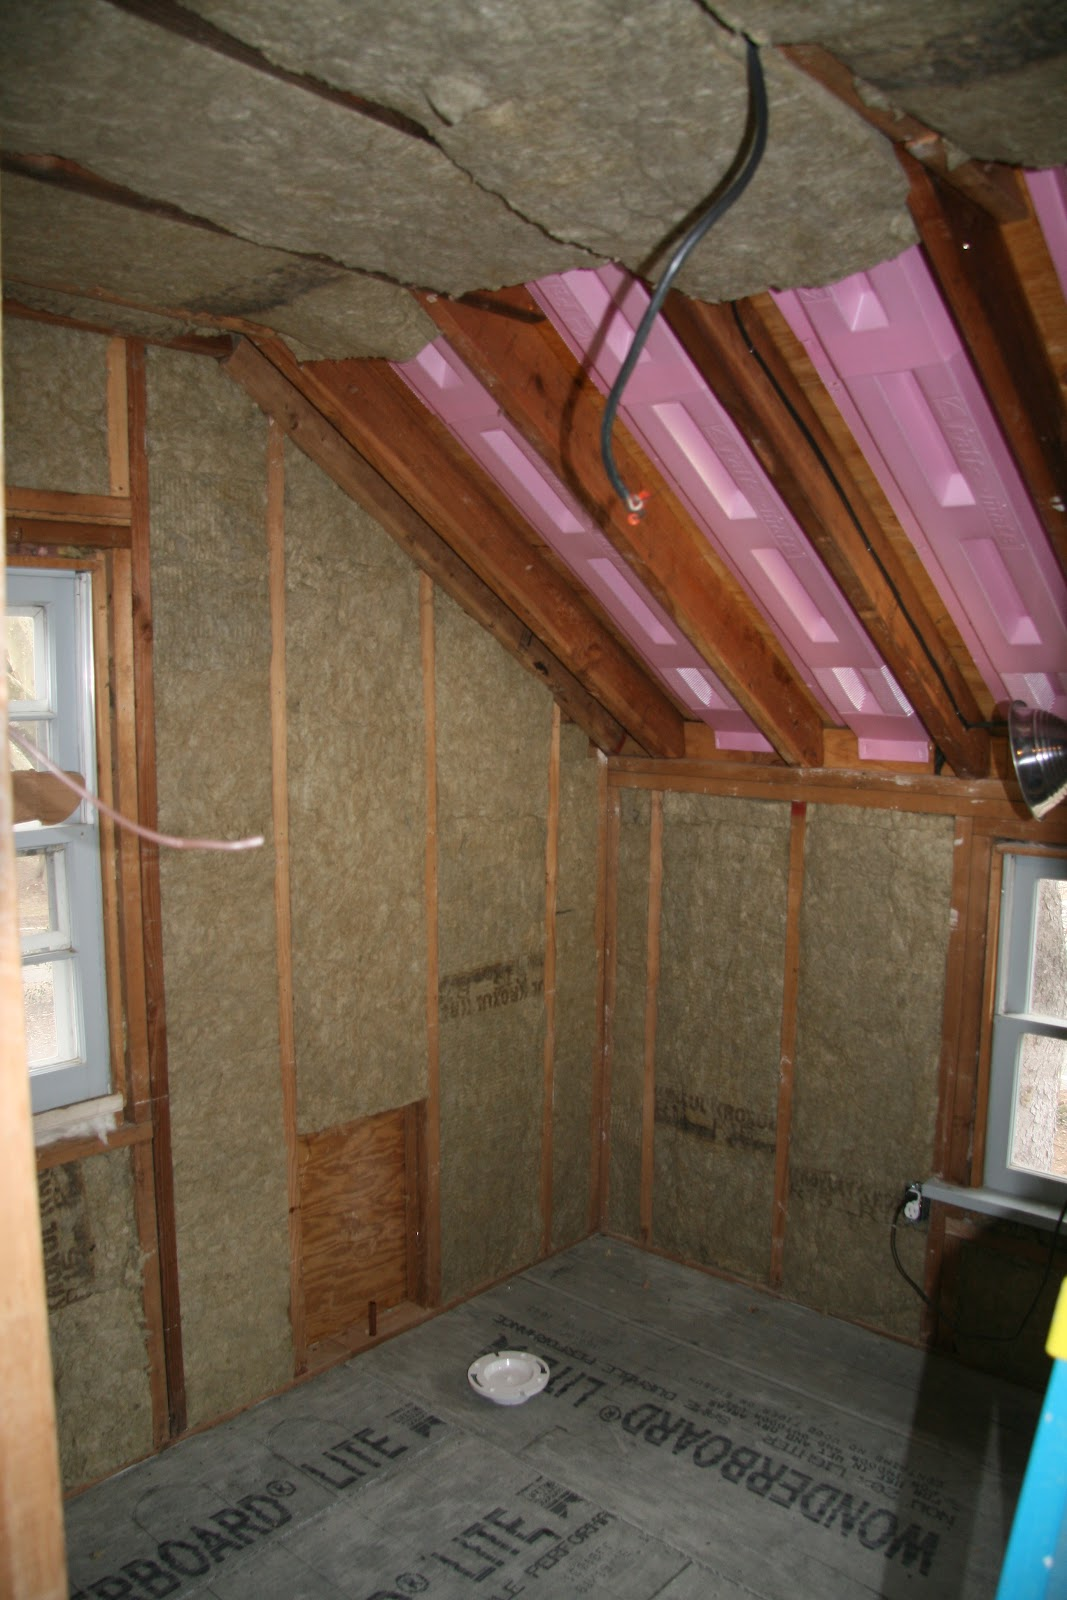 The Upstairs Bathrooms And Ceilings In S Old Farmhouse Are Being Insulated With Roxul Insulation Bats Made For Either Or Walls